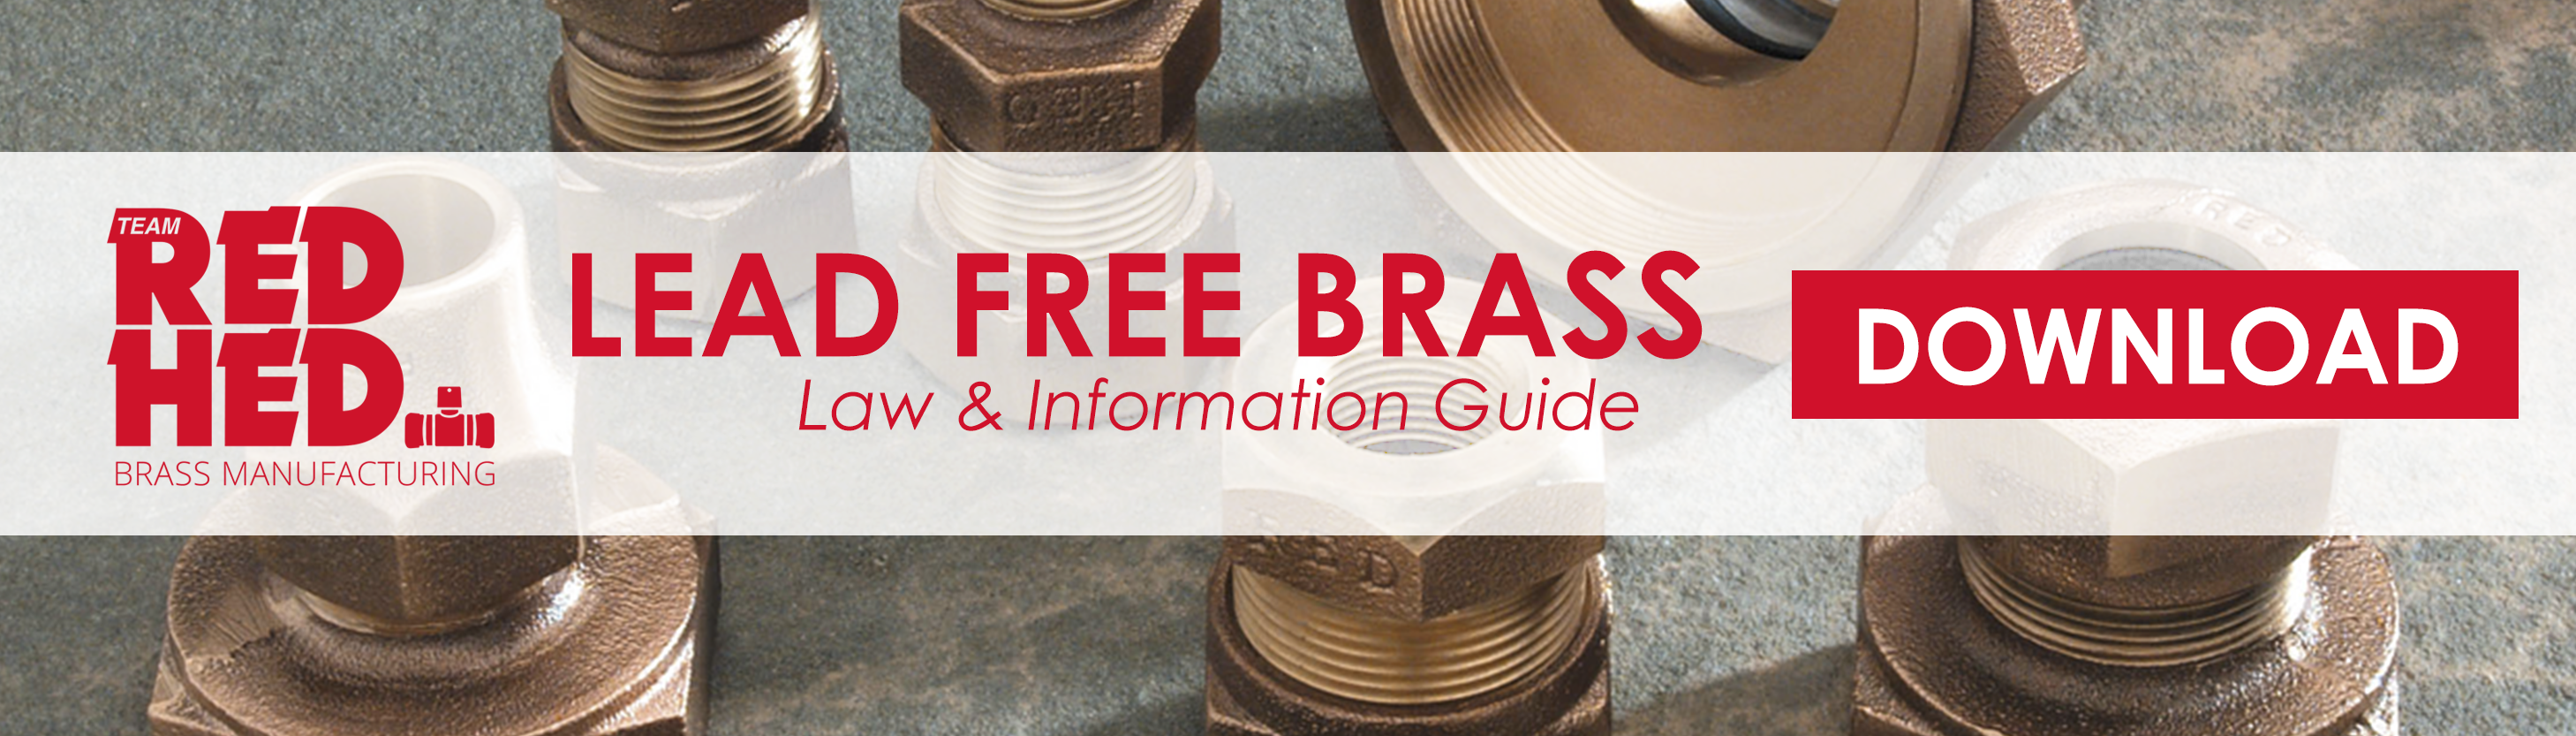 Lead Free Brass: Law and Information Guide